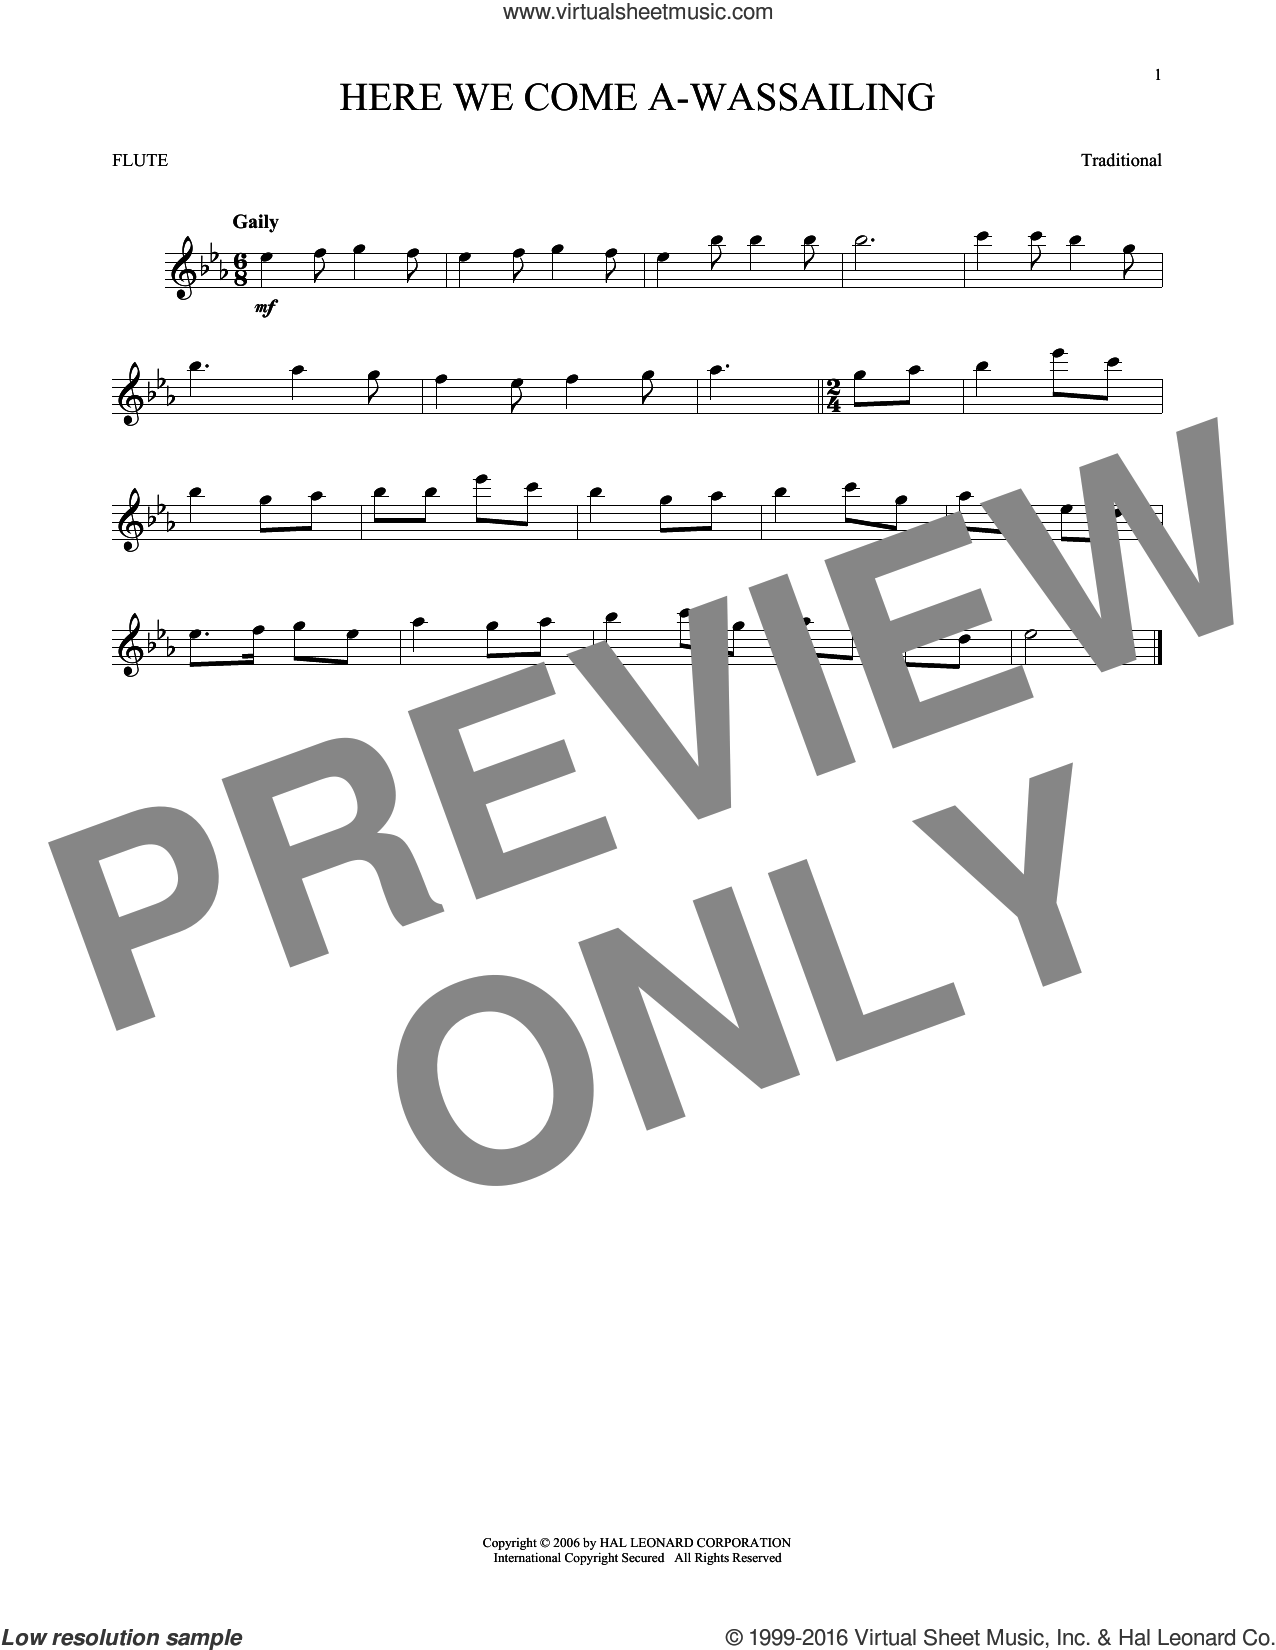 Here We Come A-Wassailing sheet music for flute solo, intermediate skill level